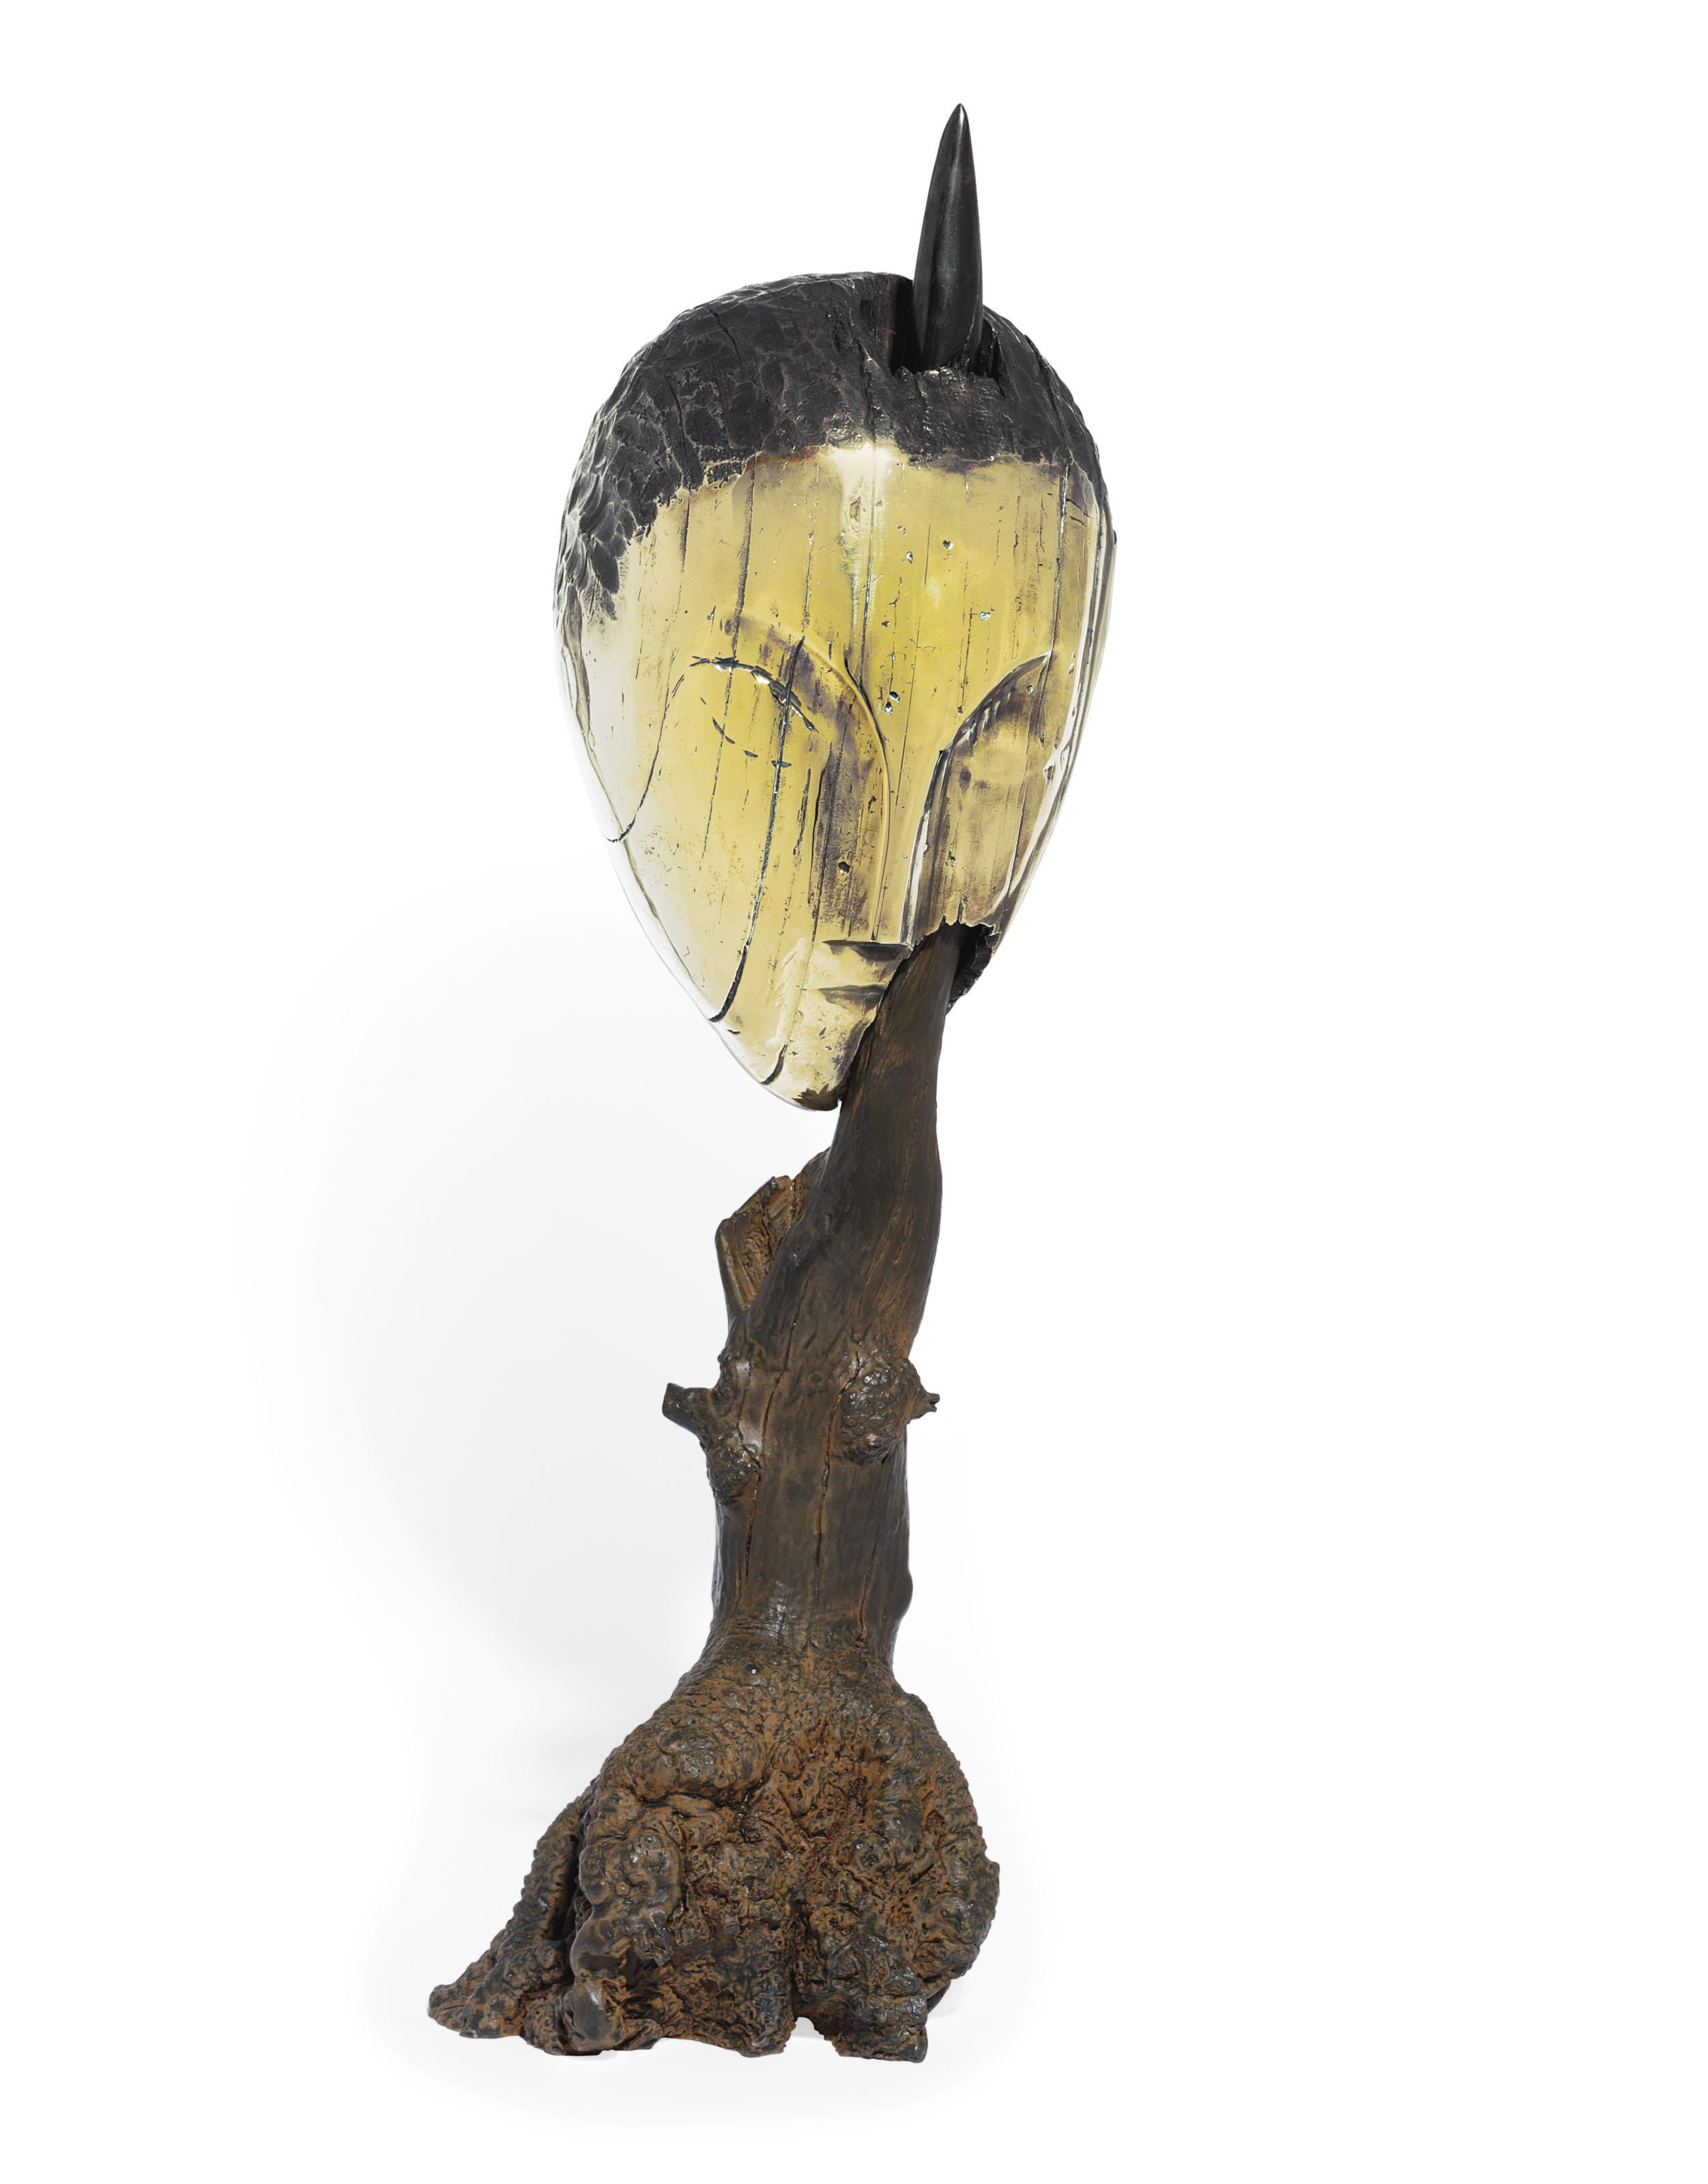 Phineas (after Brancusi)